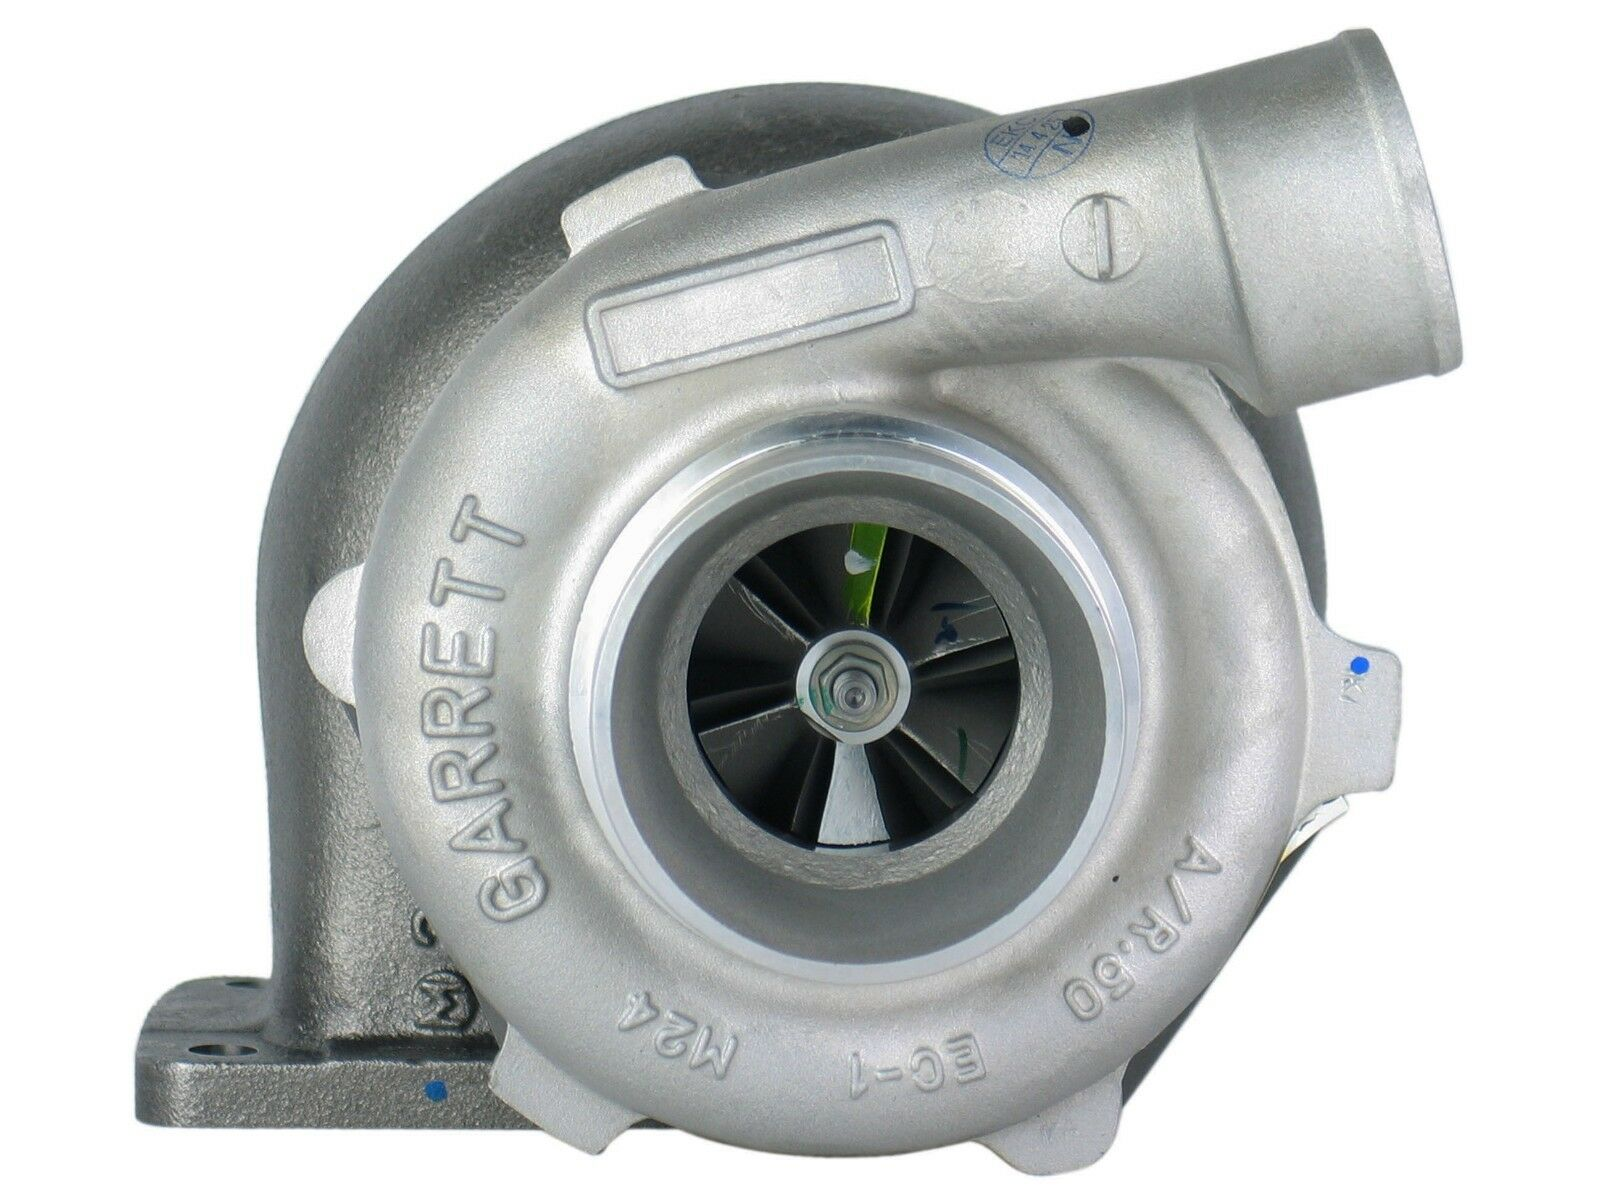 Komatsu WA350-1 WA400-1 S6D110 Engine 465044-5255 NEW OEM Garrett Turbocharger - TurboTurbos